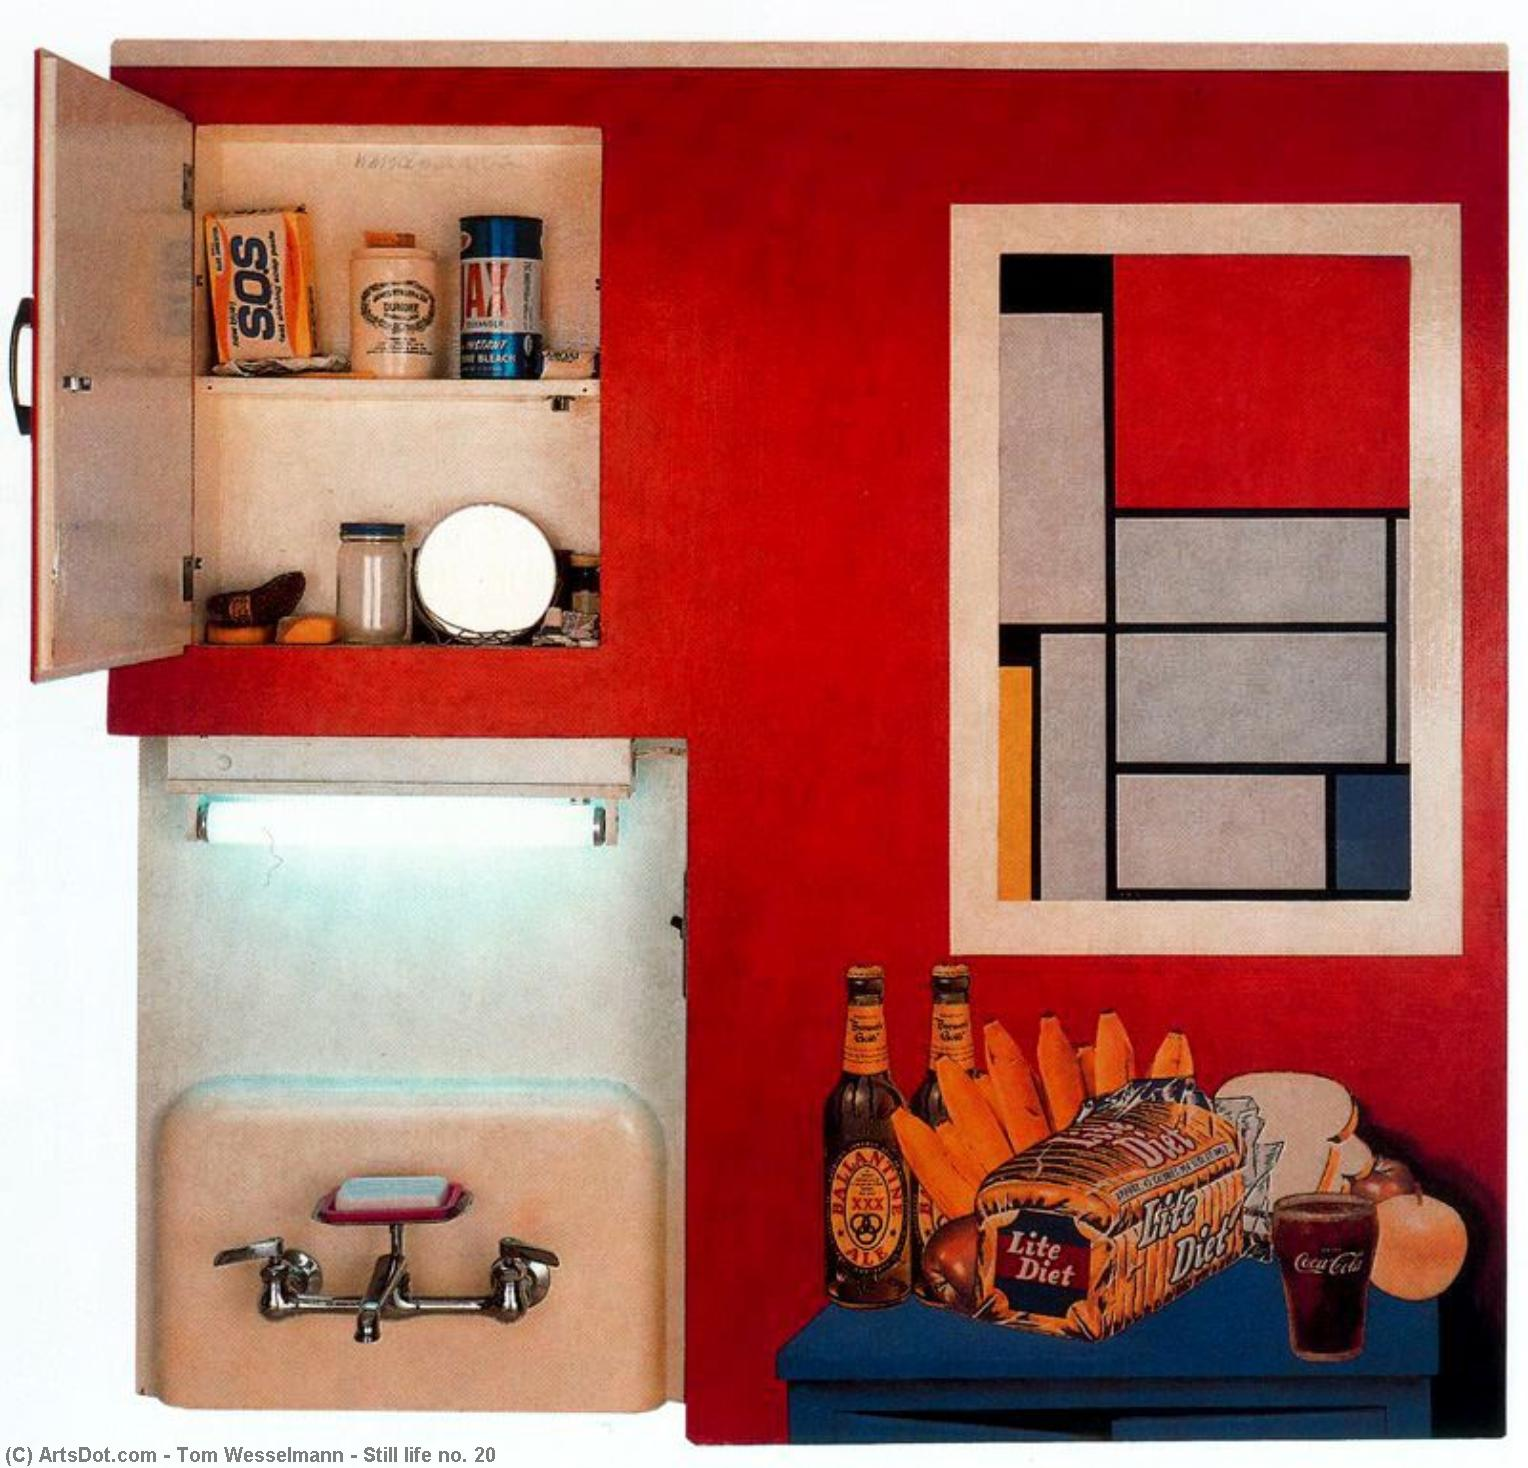 Wikioo.org - The Encyclopedia of Fine Arts - Painting, Artwork by Tom Wesselmann - Still life no. 20